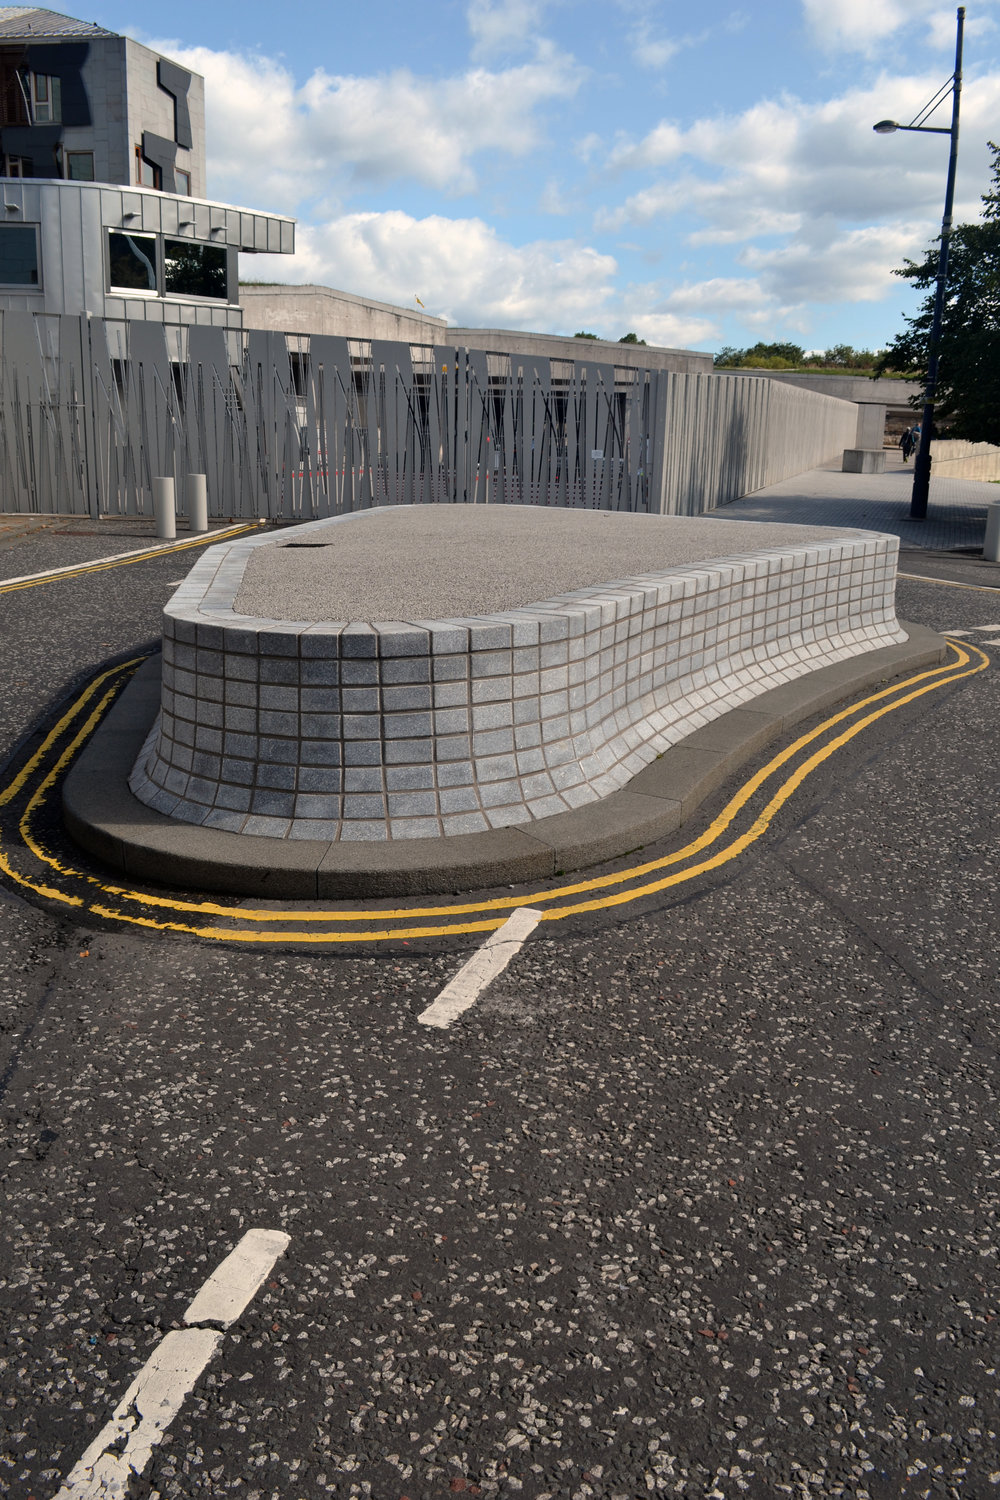 In 2009 an anti-terror roundabout was installed at the entrance to the underground car park close to the Dynamic Earth centre